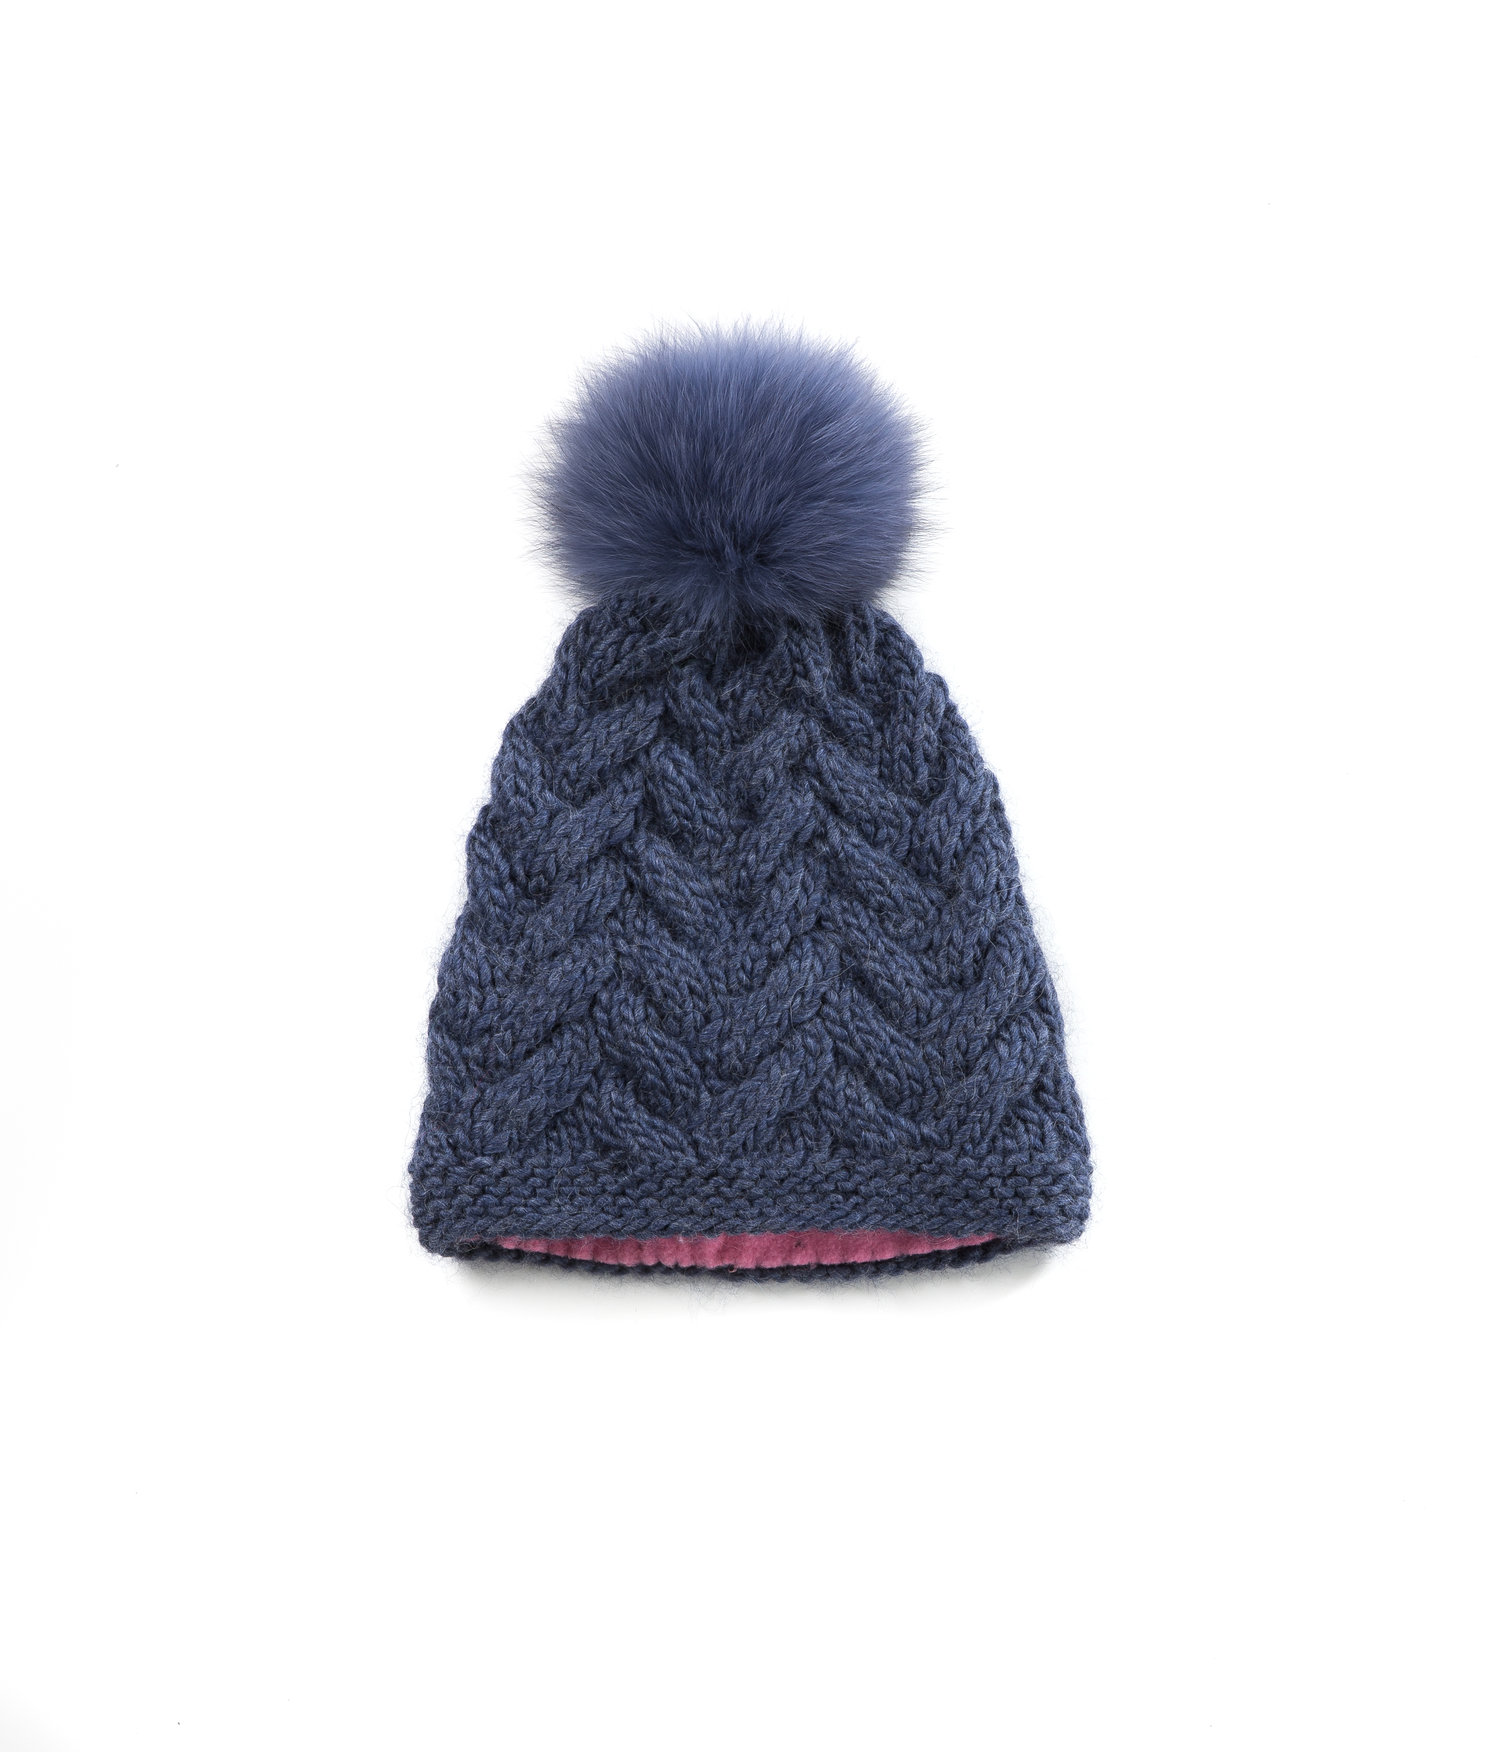 0f3a56a4befd9 KNIT BEANIE CAP TOQUE - DENIM CABLE KNIT HAT — Goble